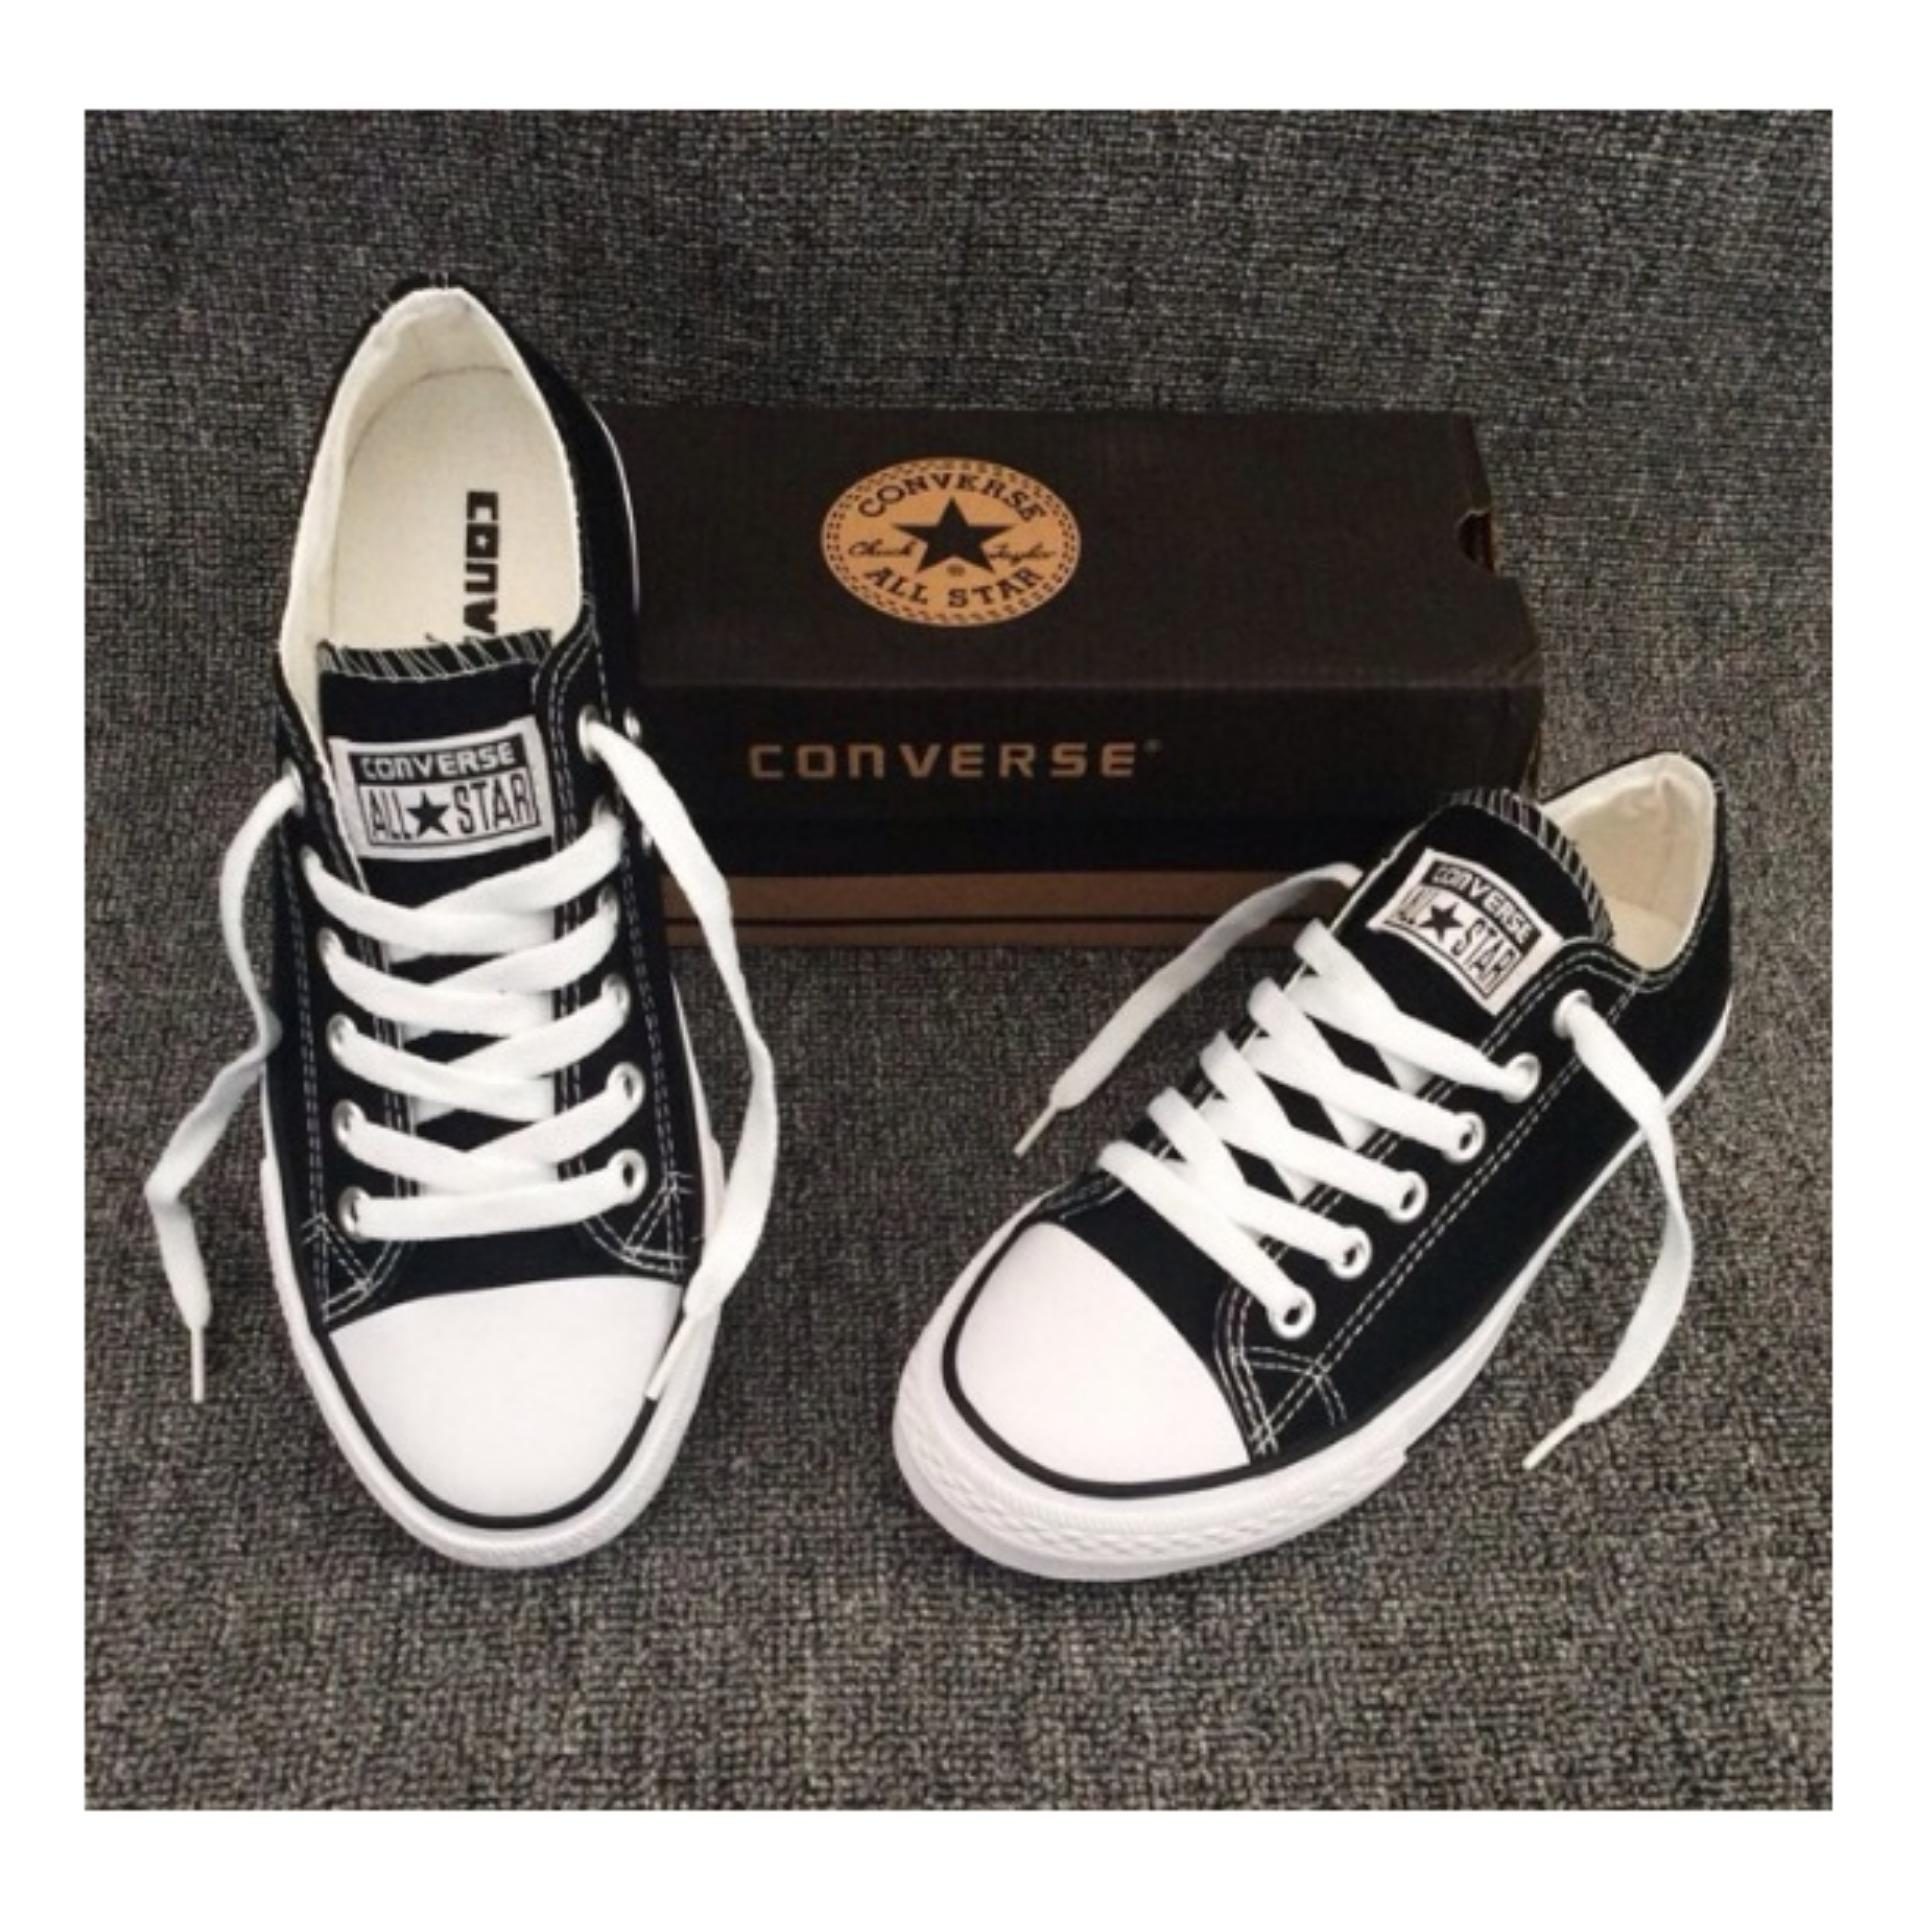 Sneakers for Women for sale - Running Shoes for Women online brands ... 058afe2dac